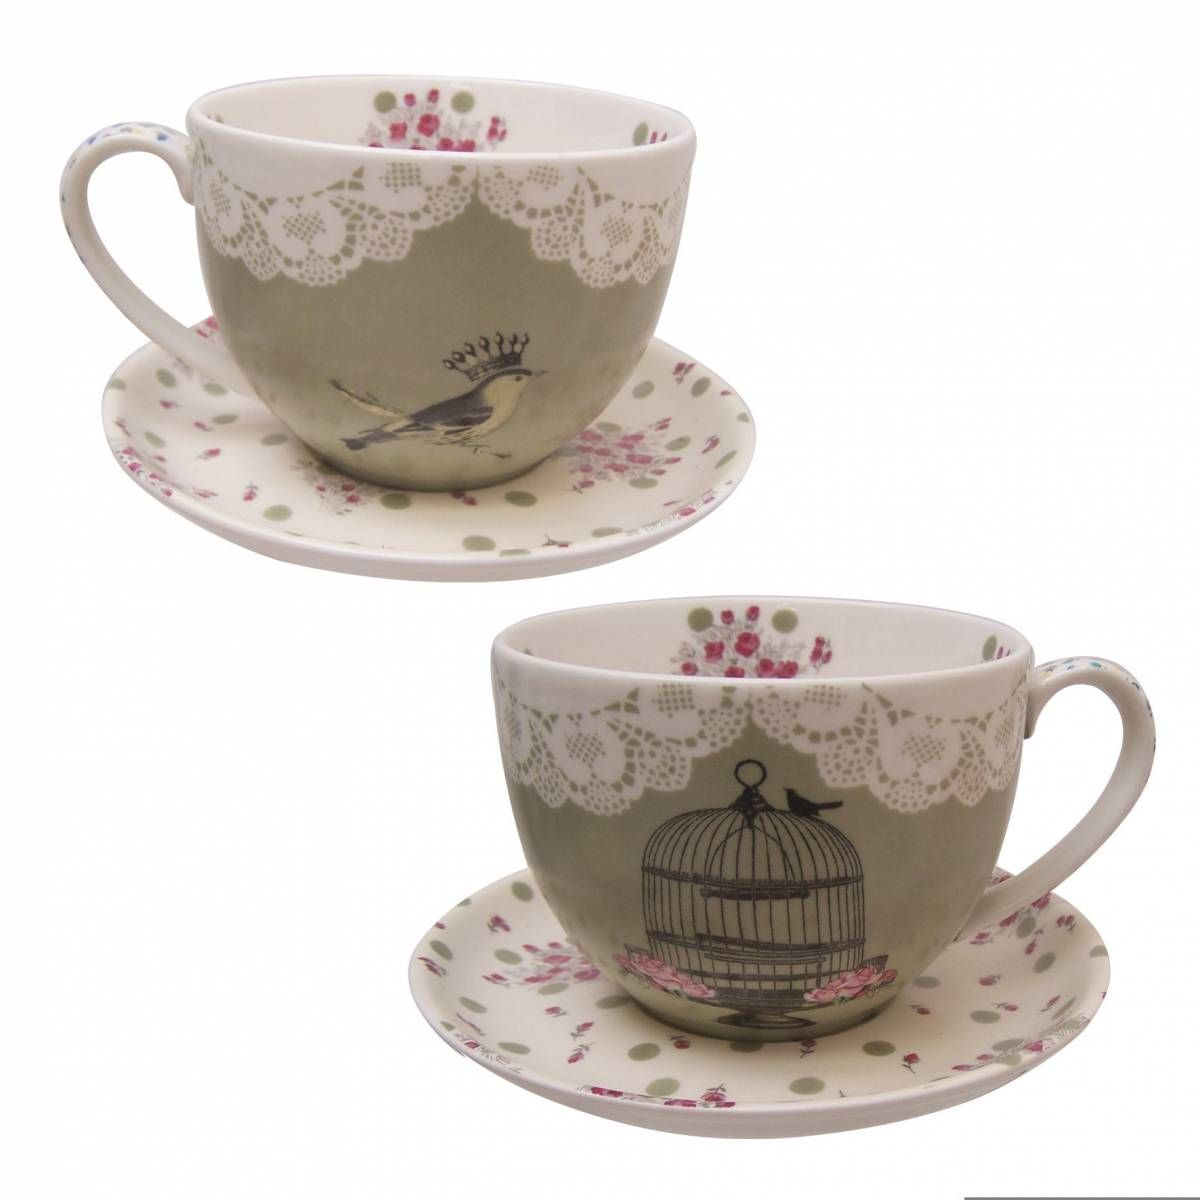 photos tea cups | With Love Tea Cup & Saucer - Olive - Mugs/Cups from the gifted penguin ...